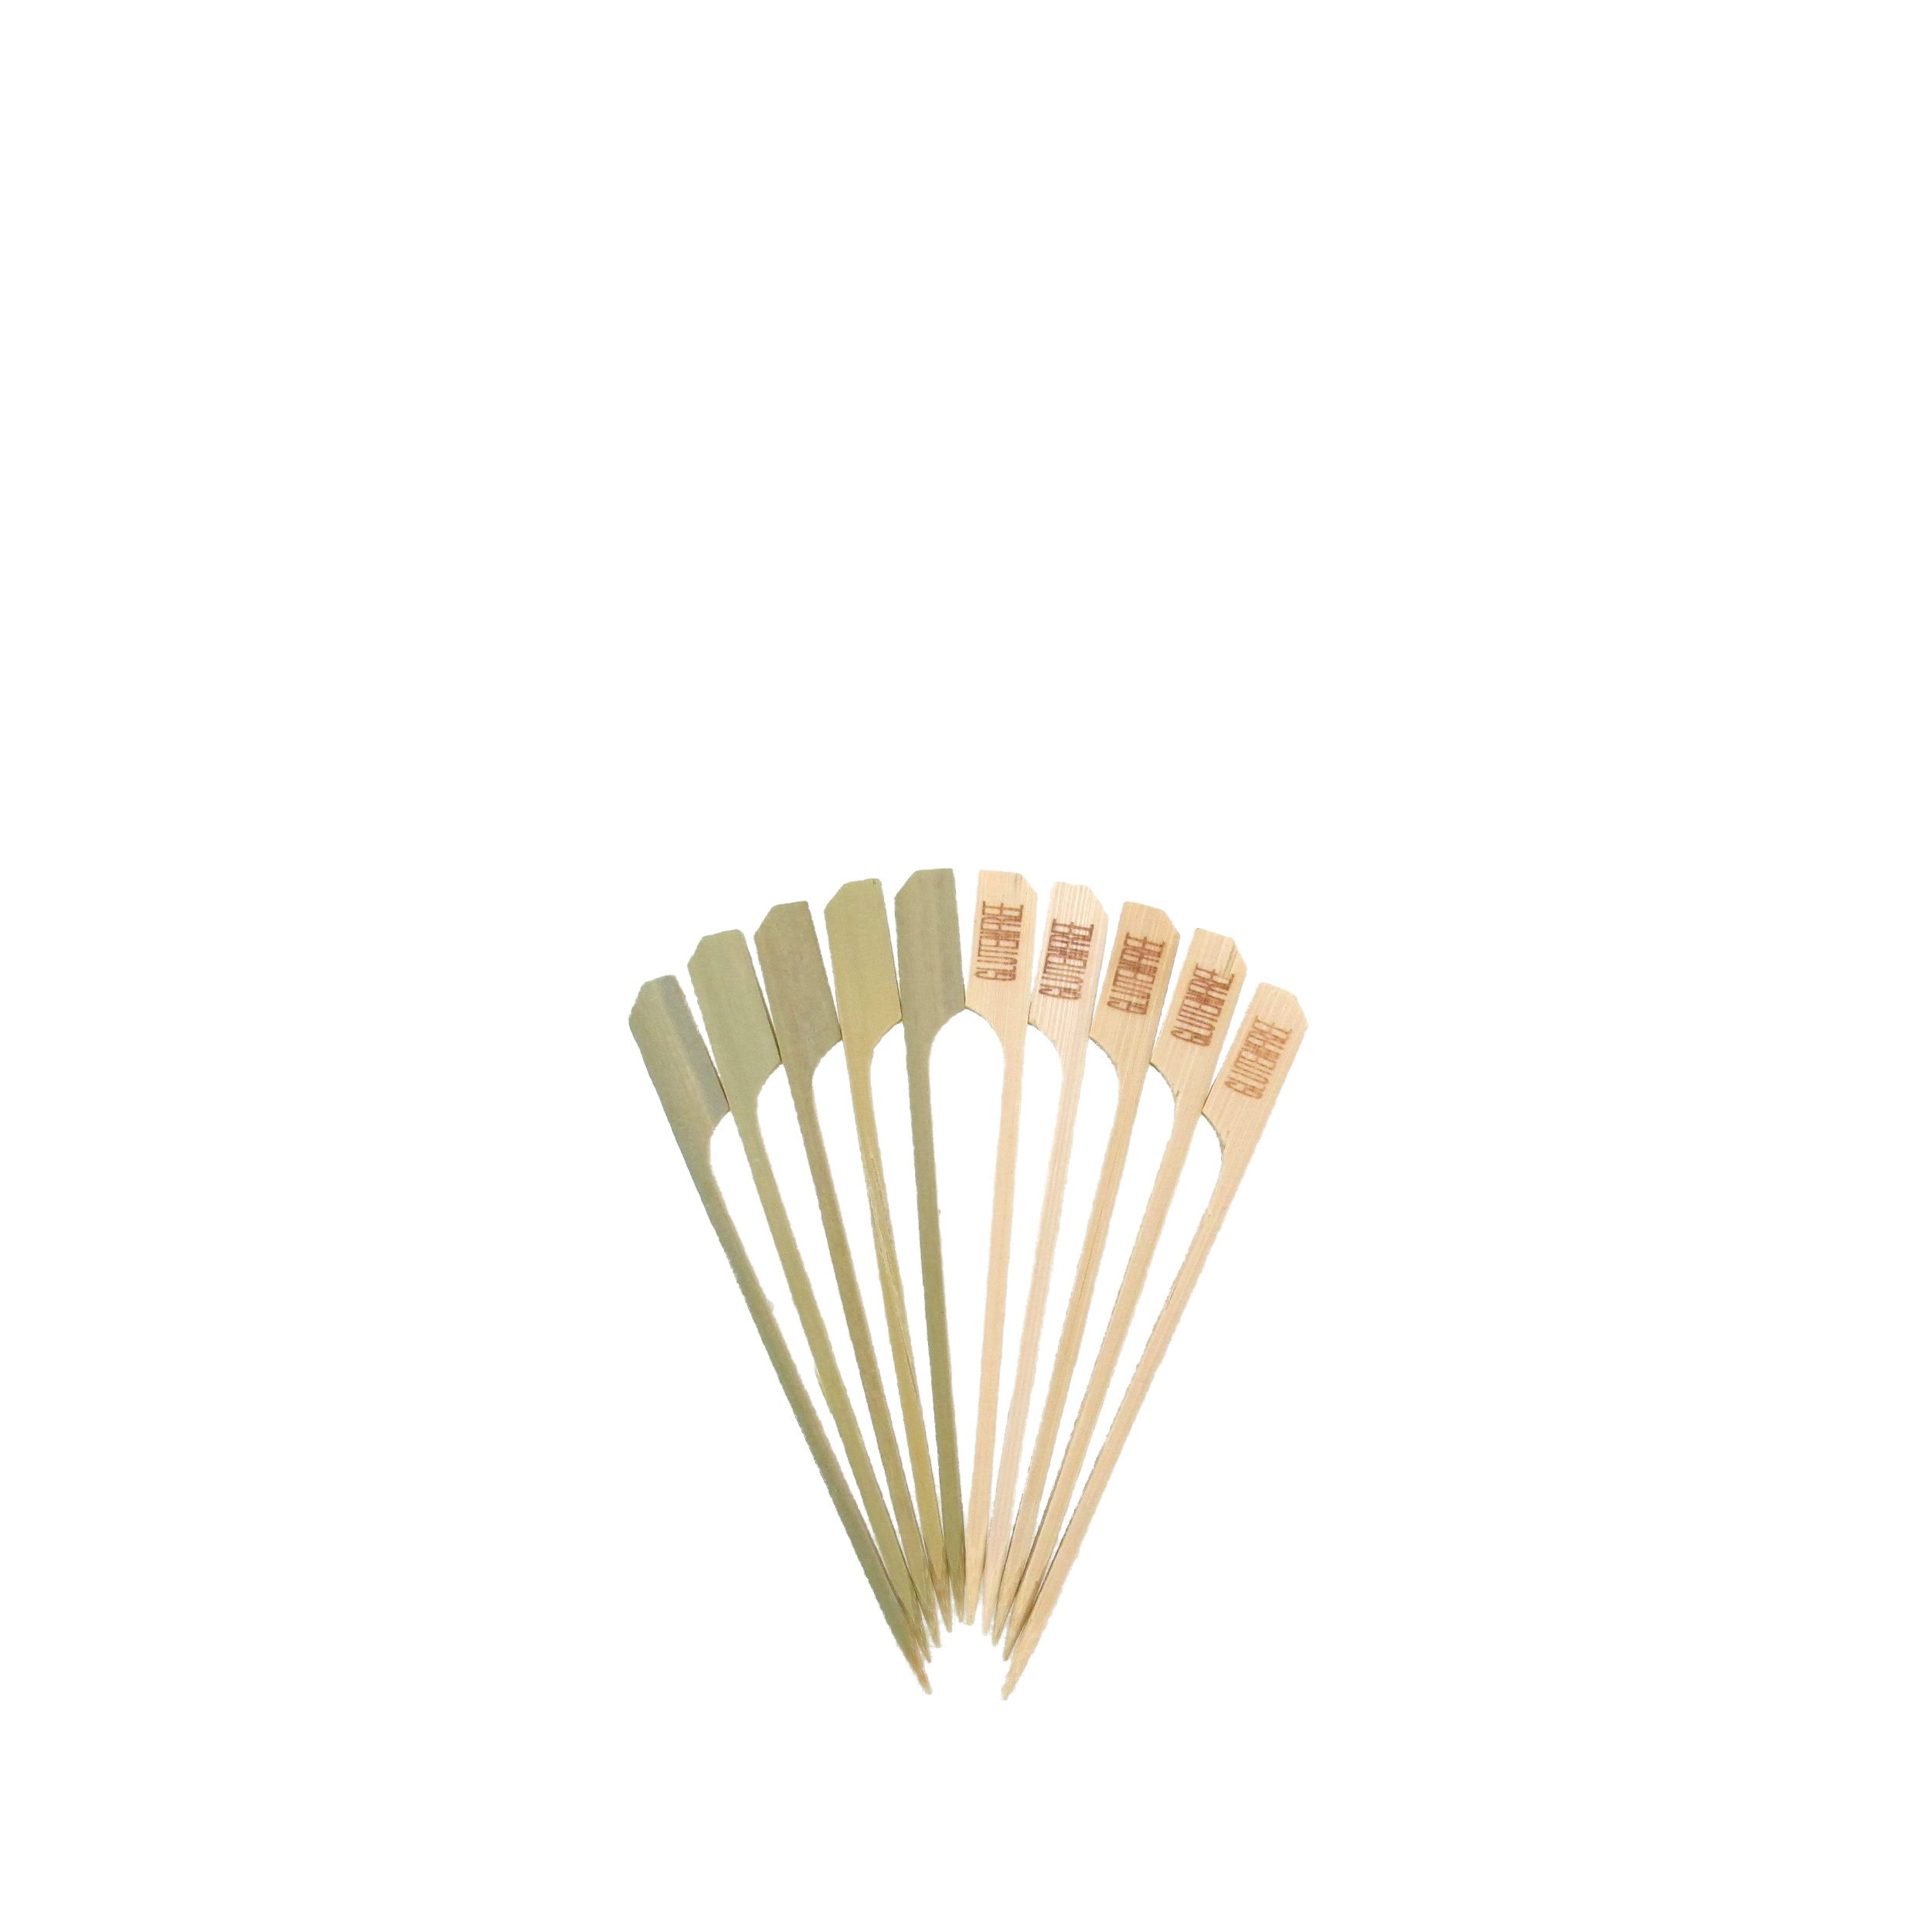 BambooMN 4.7'' Gluten Free Food Marking Natural Bamboo Paddle Skewers Picks Sticks for Catered Events, Holiday's, Restaurants or Buffets Party Supplies, 1000 Pieces by BambooMN